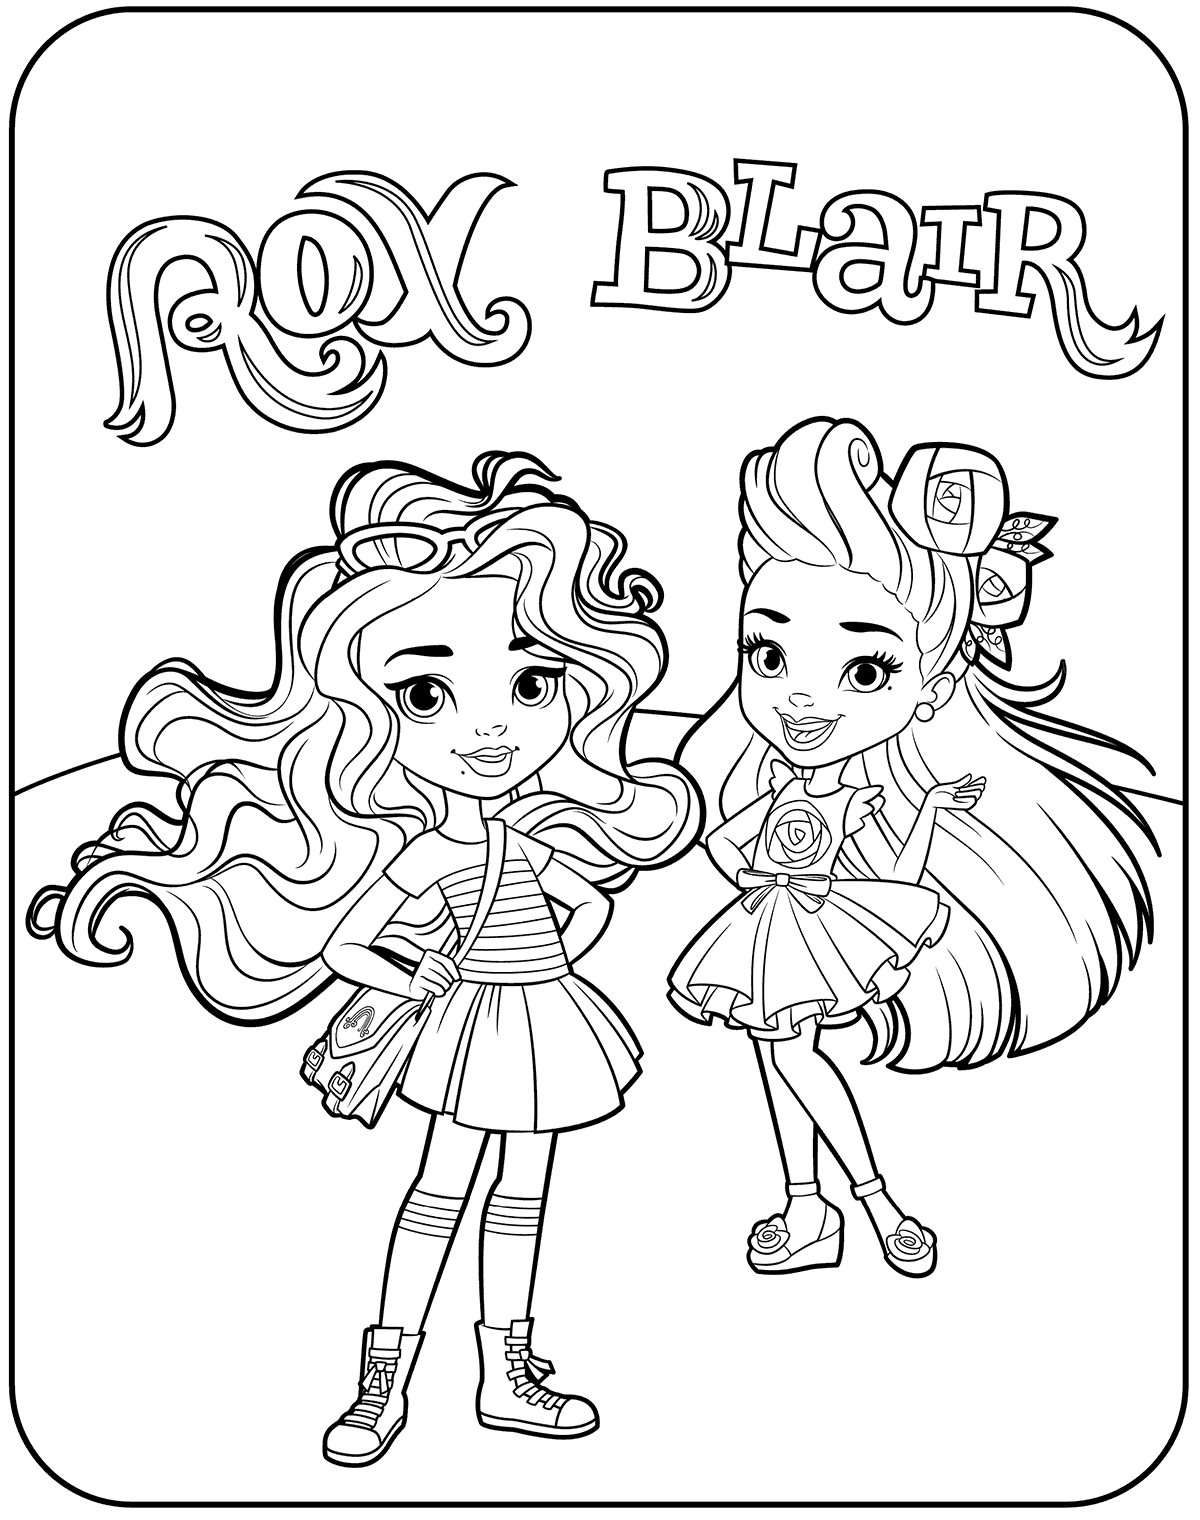 Sunny Day Coloring Pages At Getcolorings